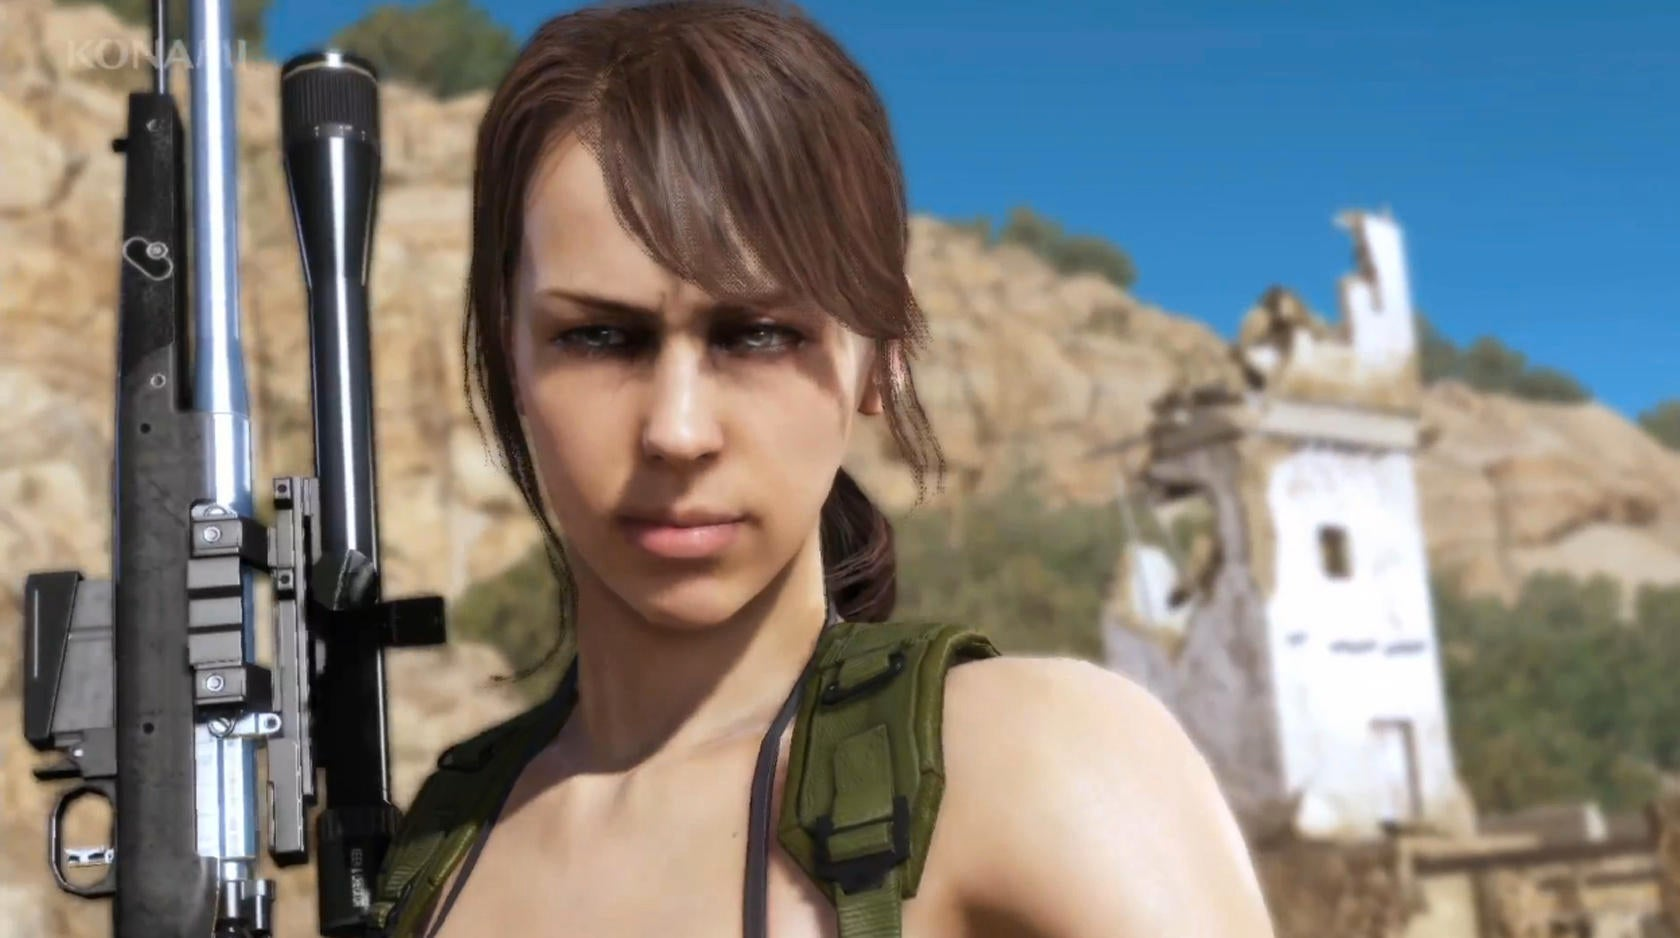 Wild Theory Explains the Origins of Metal Gear Solid V's Sniper